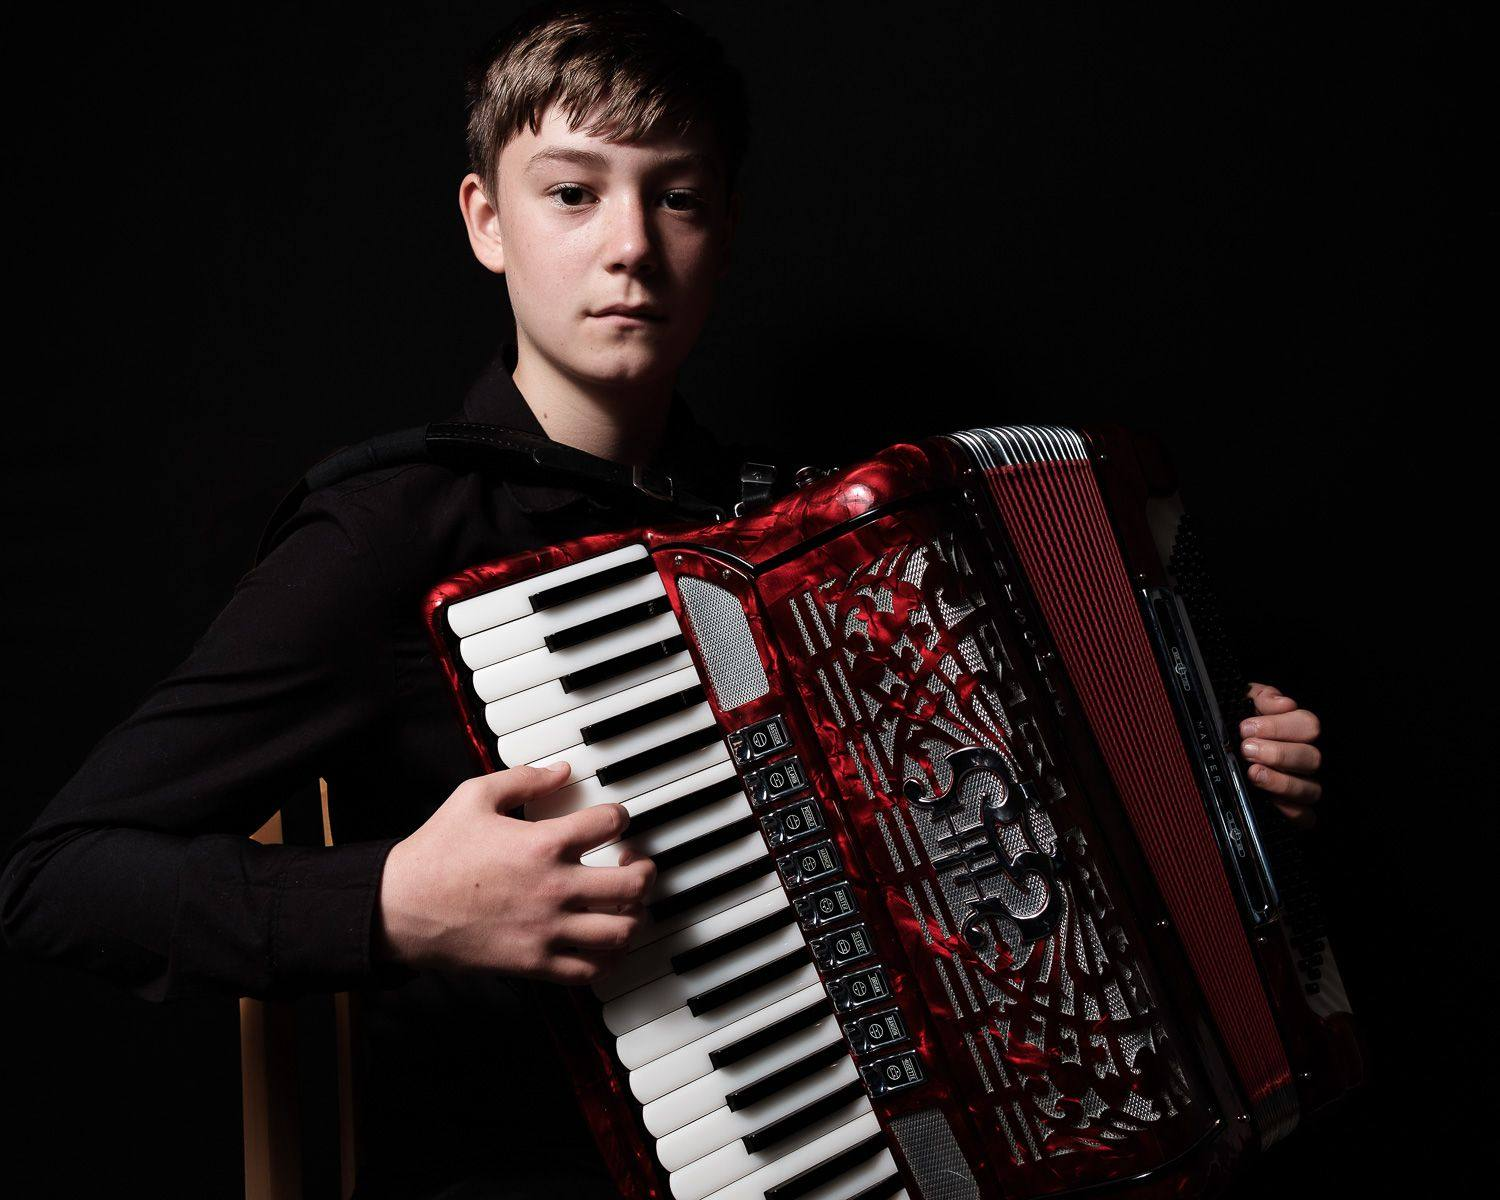 portrait of piano accordian player